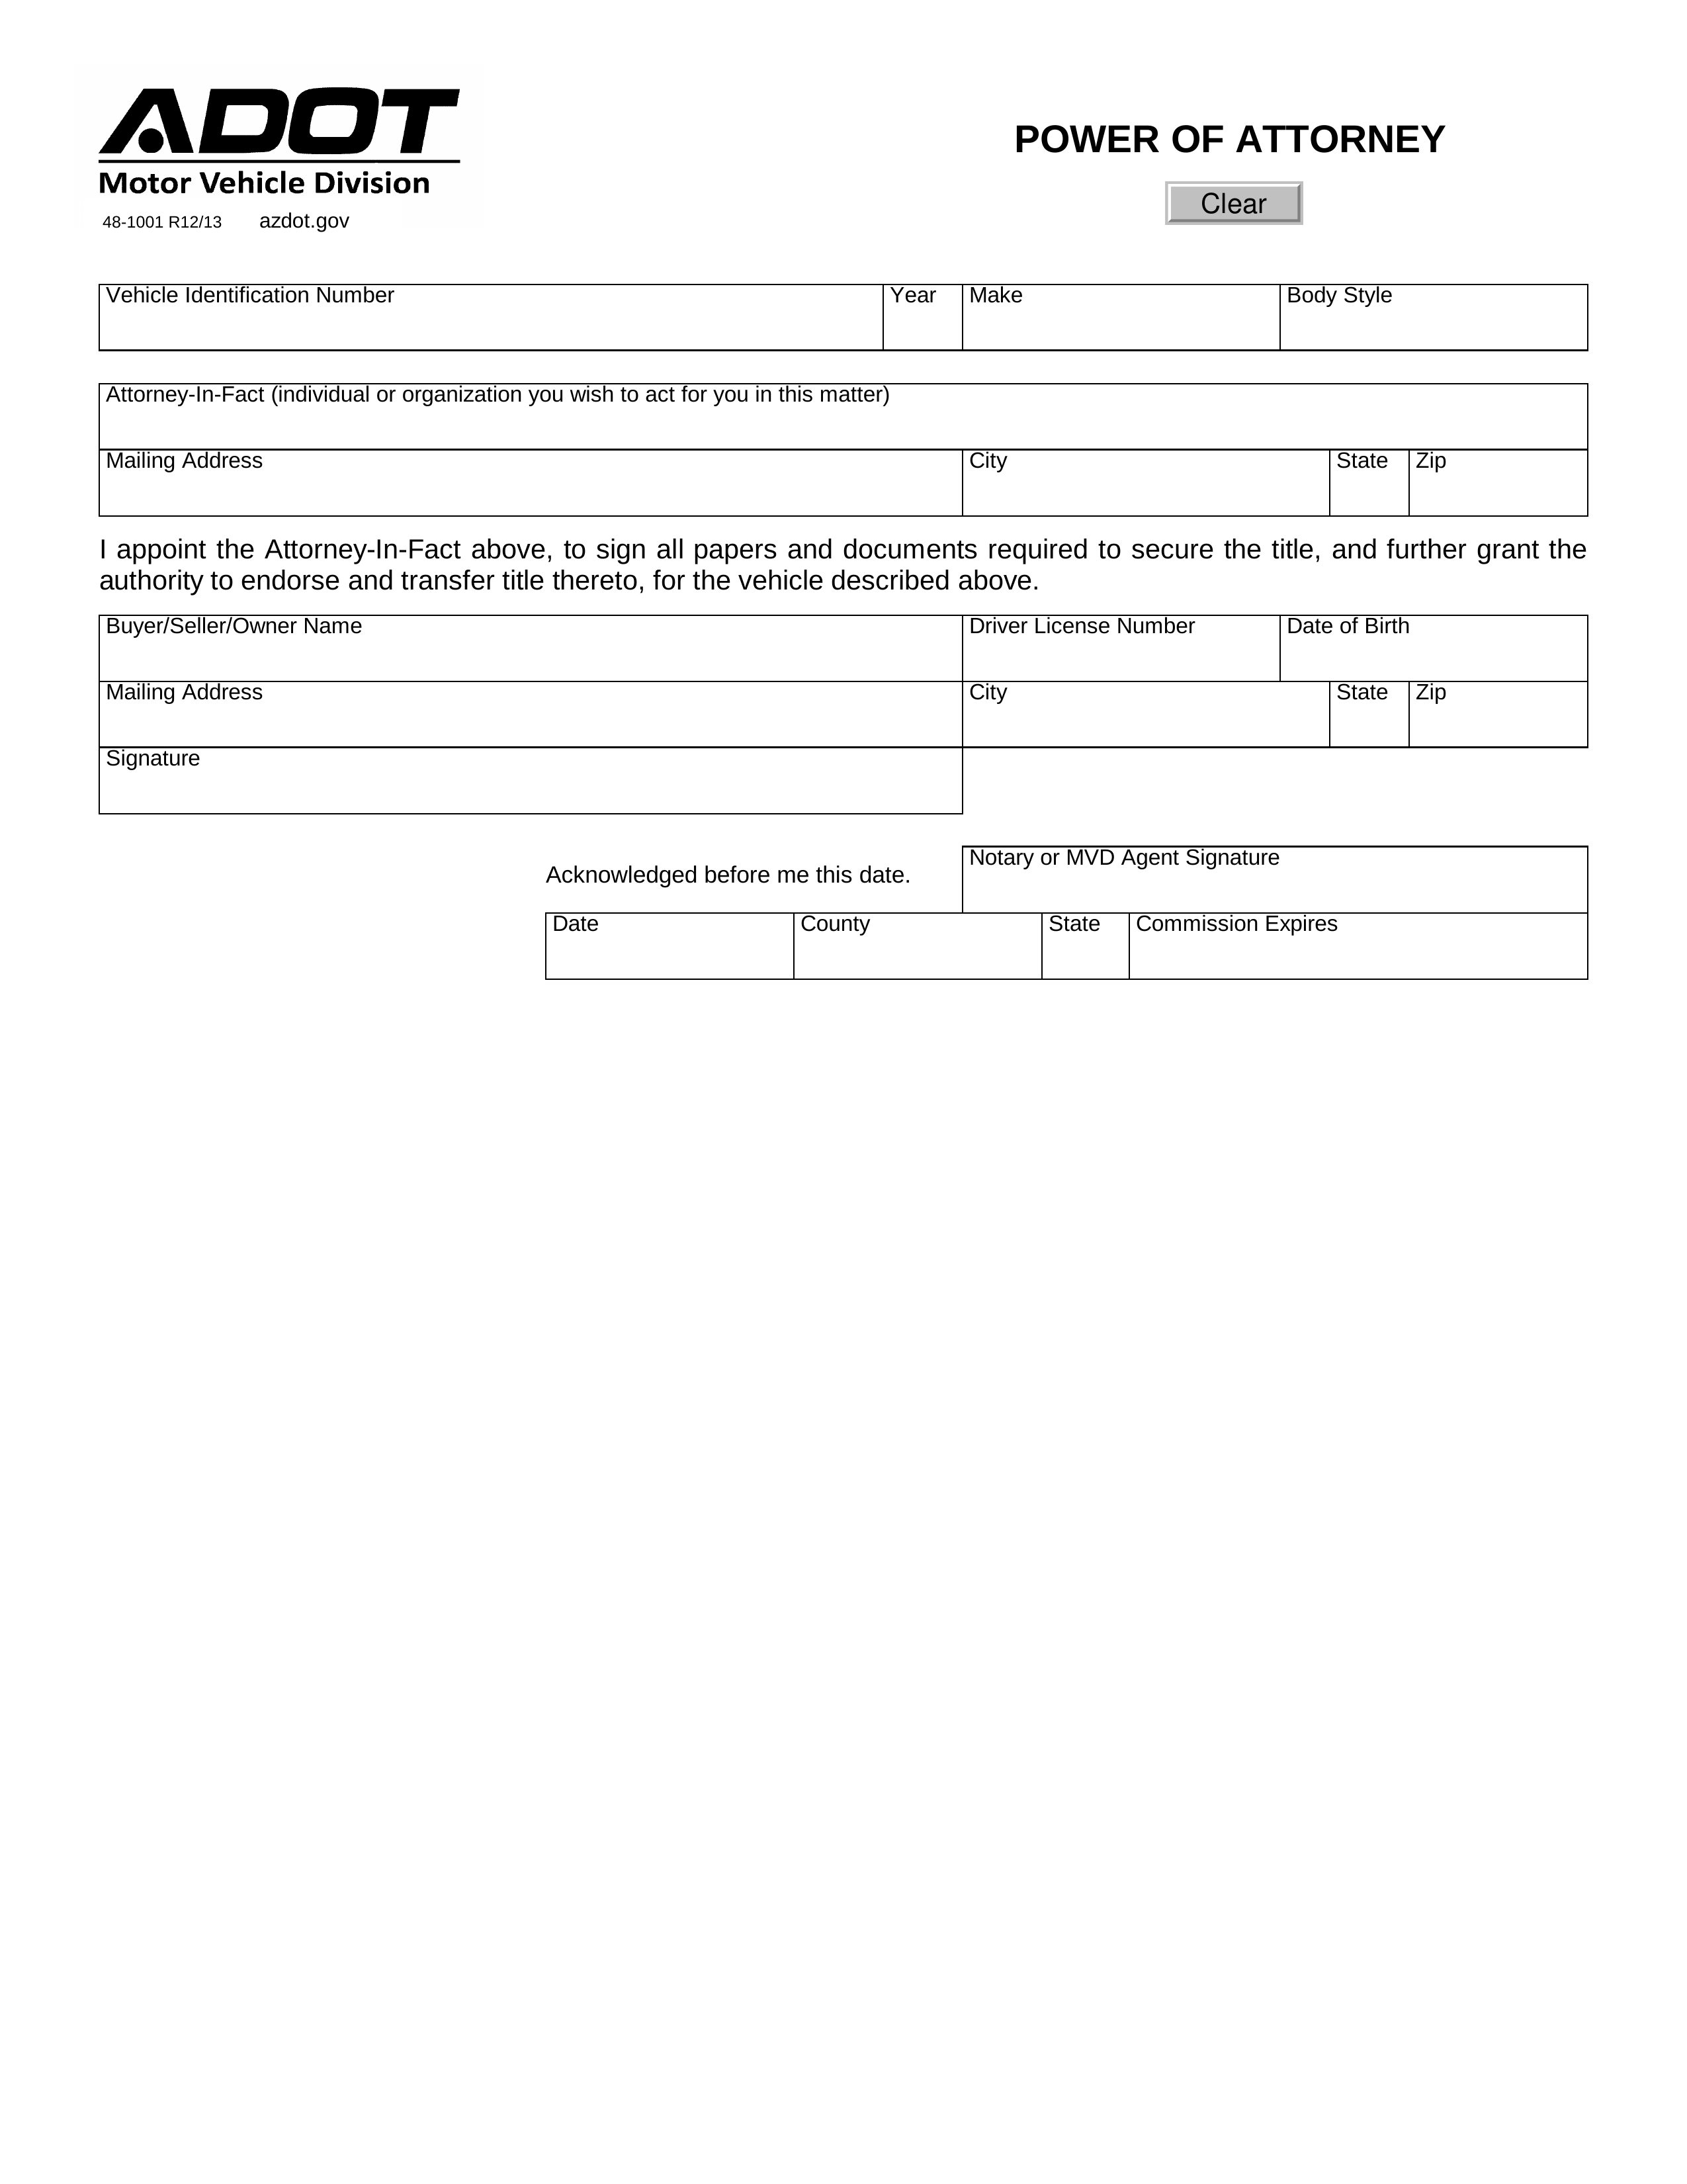 power of attorney form az  Free Arizona Vehicle Power of Attorney Form - PDF | eForms ...